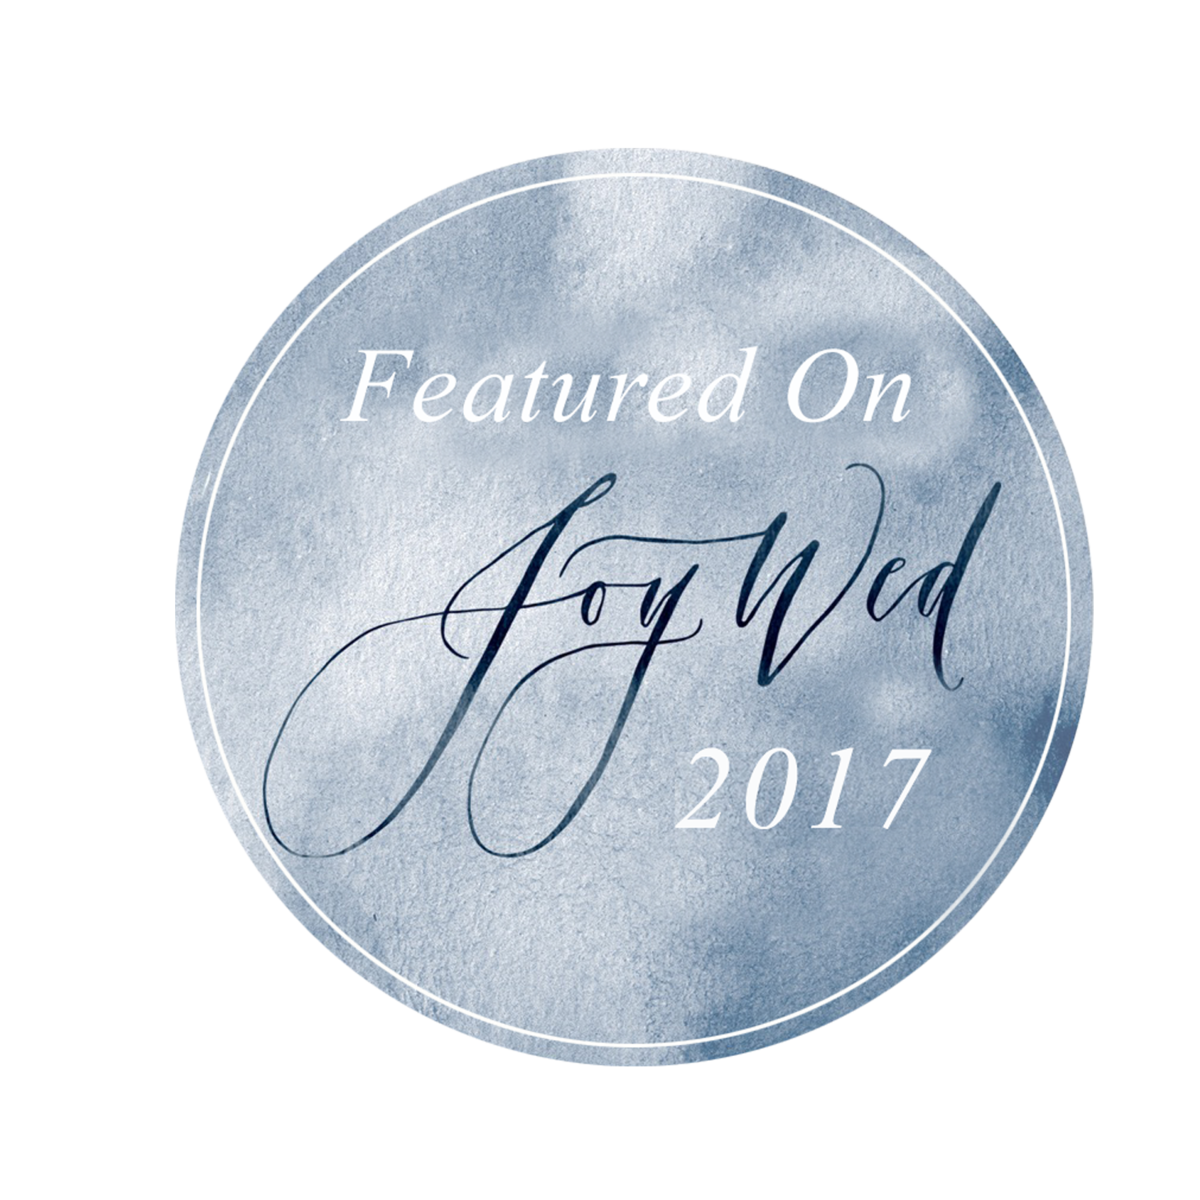 Joy-Wed-Badge-Featured-On-2017